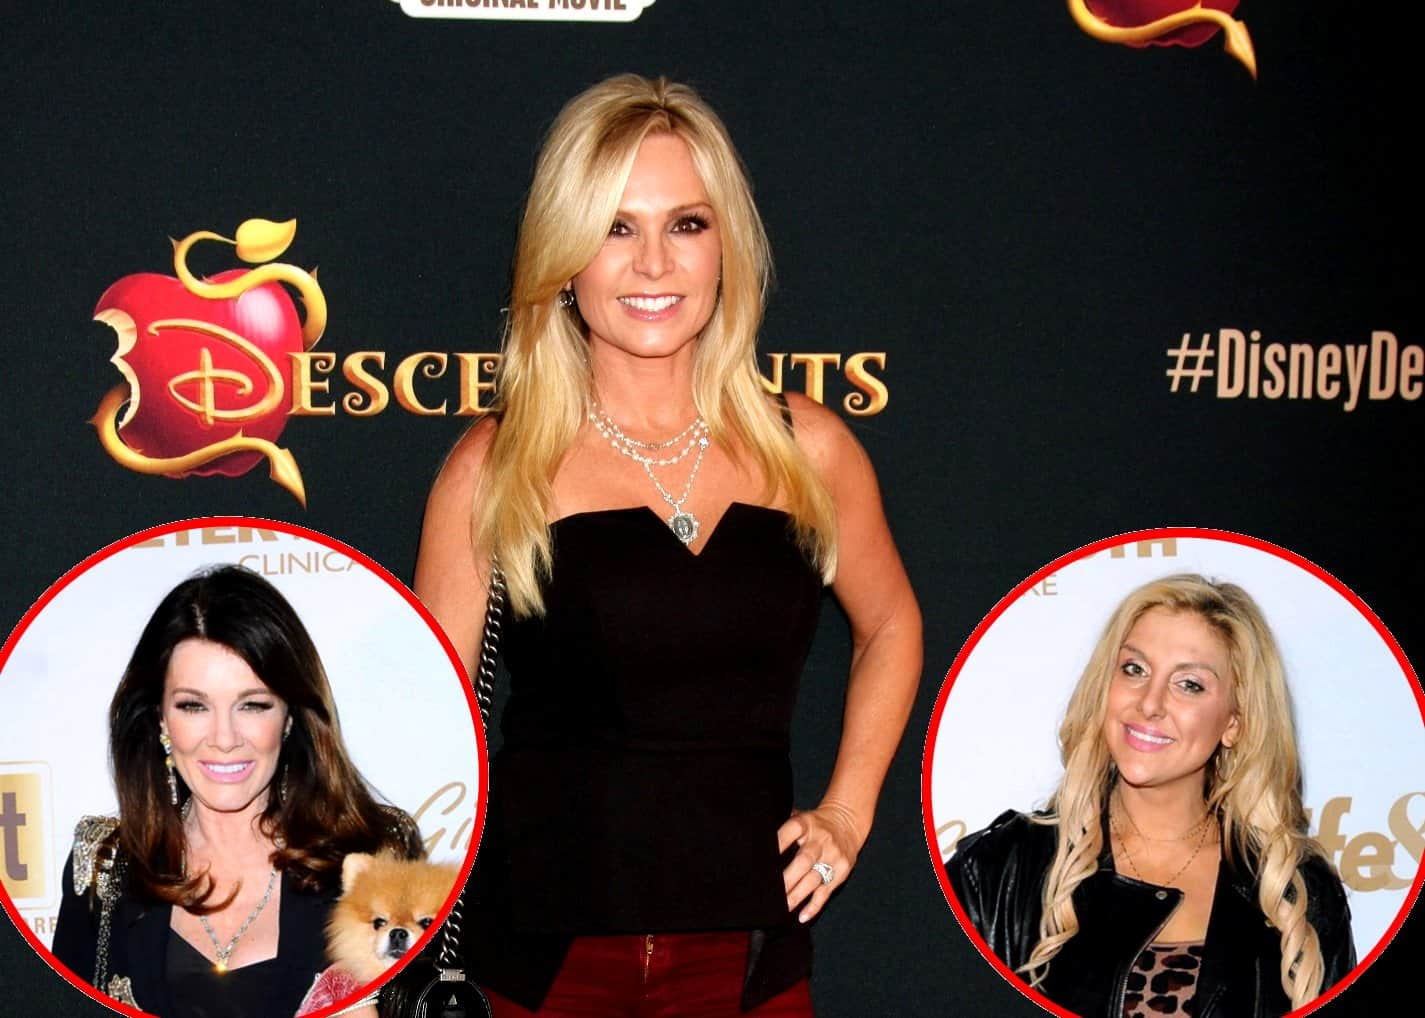 Tamra Judge Dishes on New RHOC Season! Talks Lisa Vanderpump Quitting the RHOBH and 'Rockstar' Gina Kirschenheiter